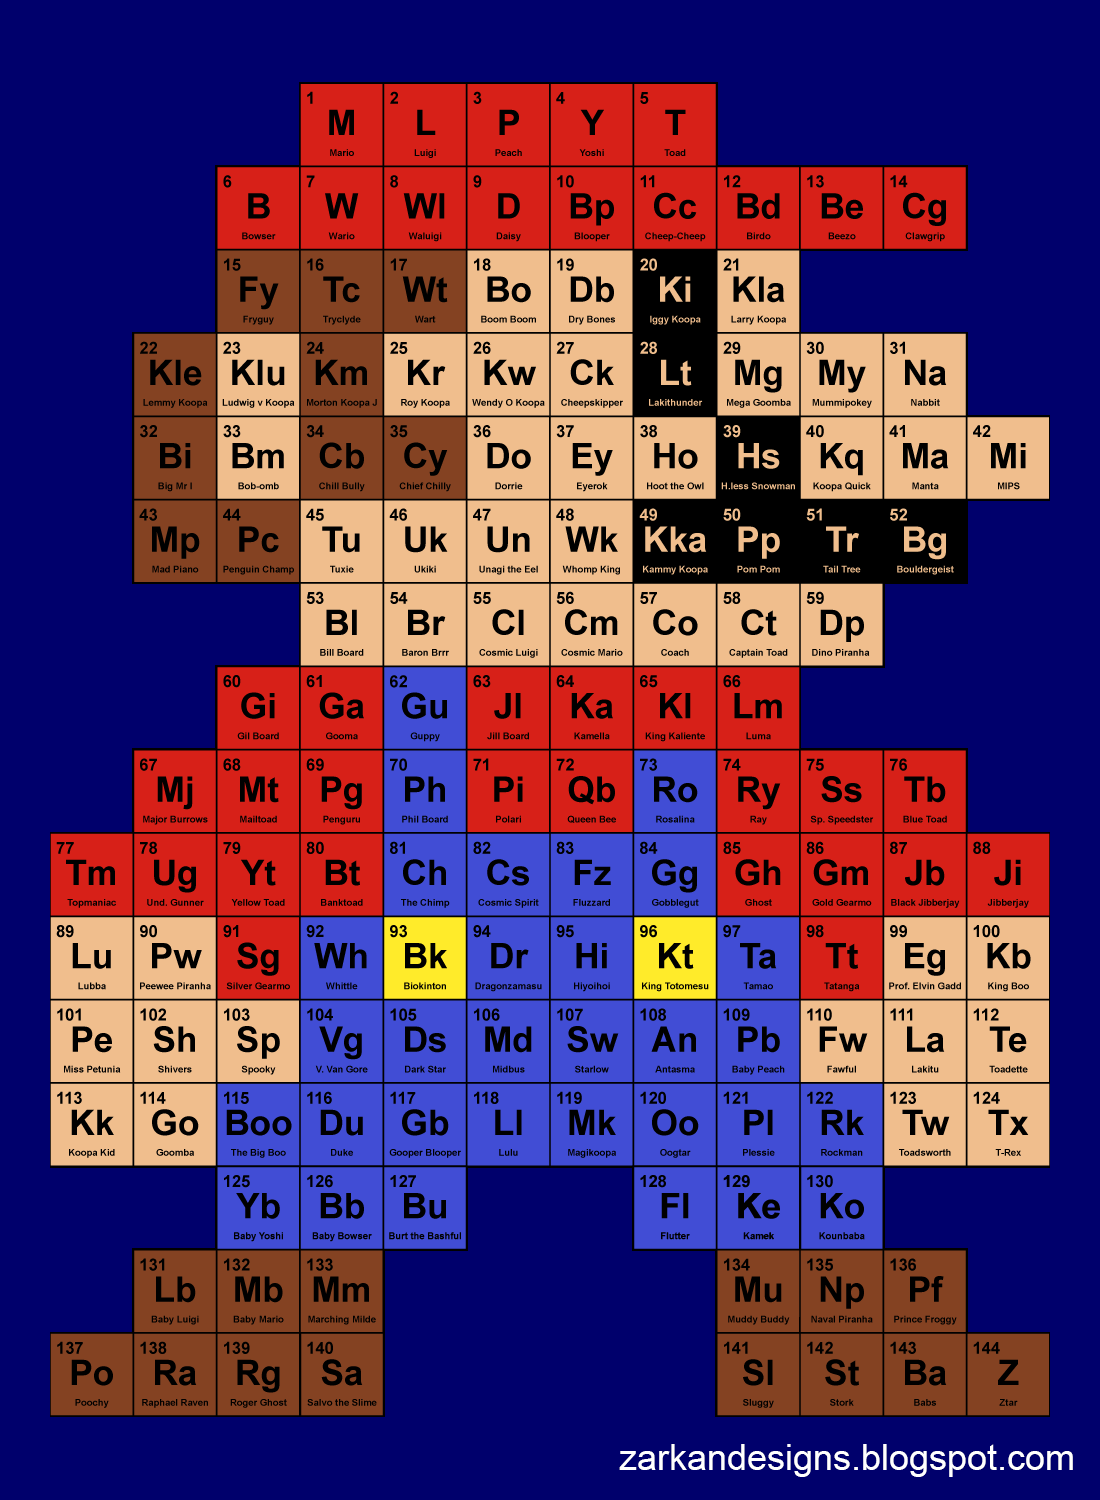 Periodic mario table pinterest de mario mario y tabla tabla peridica de mario xd periodic mario table imgur urtaz Image collections